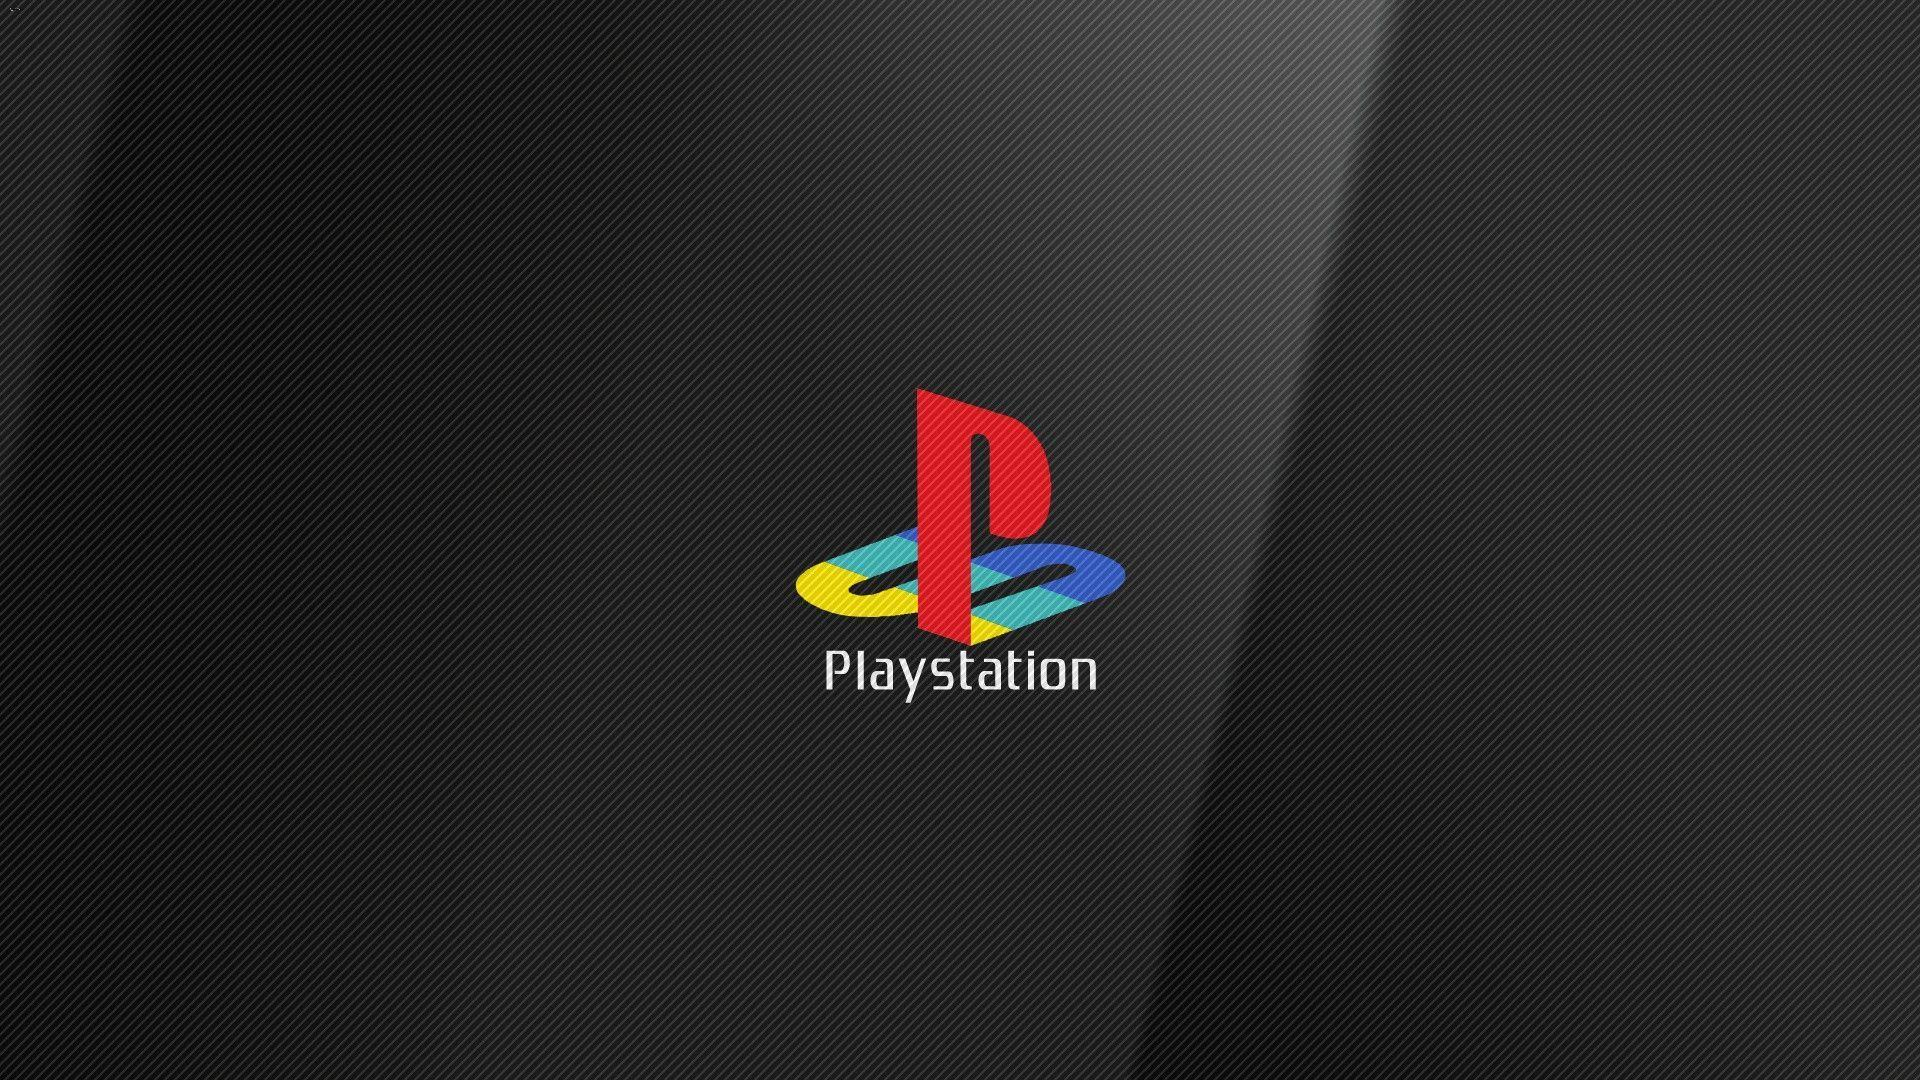 Wallpapers For > Playstation Wallpapers Iphone